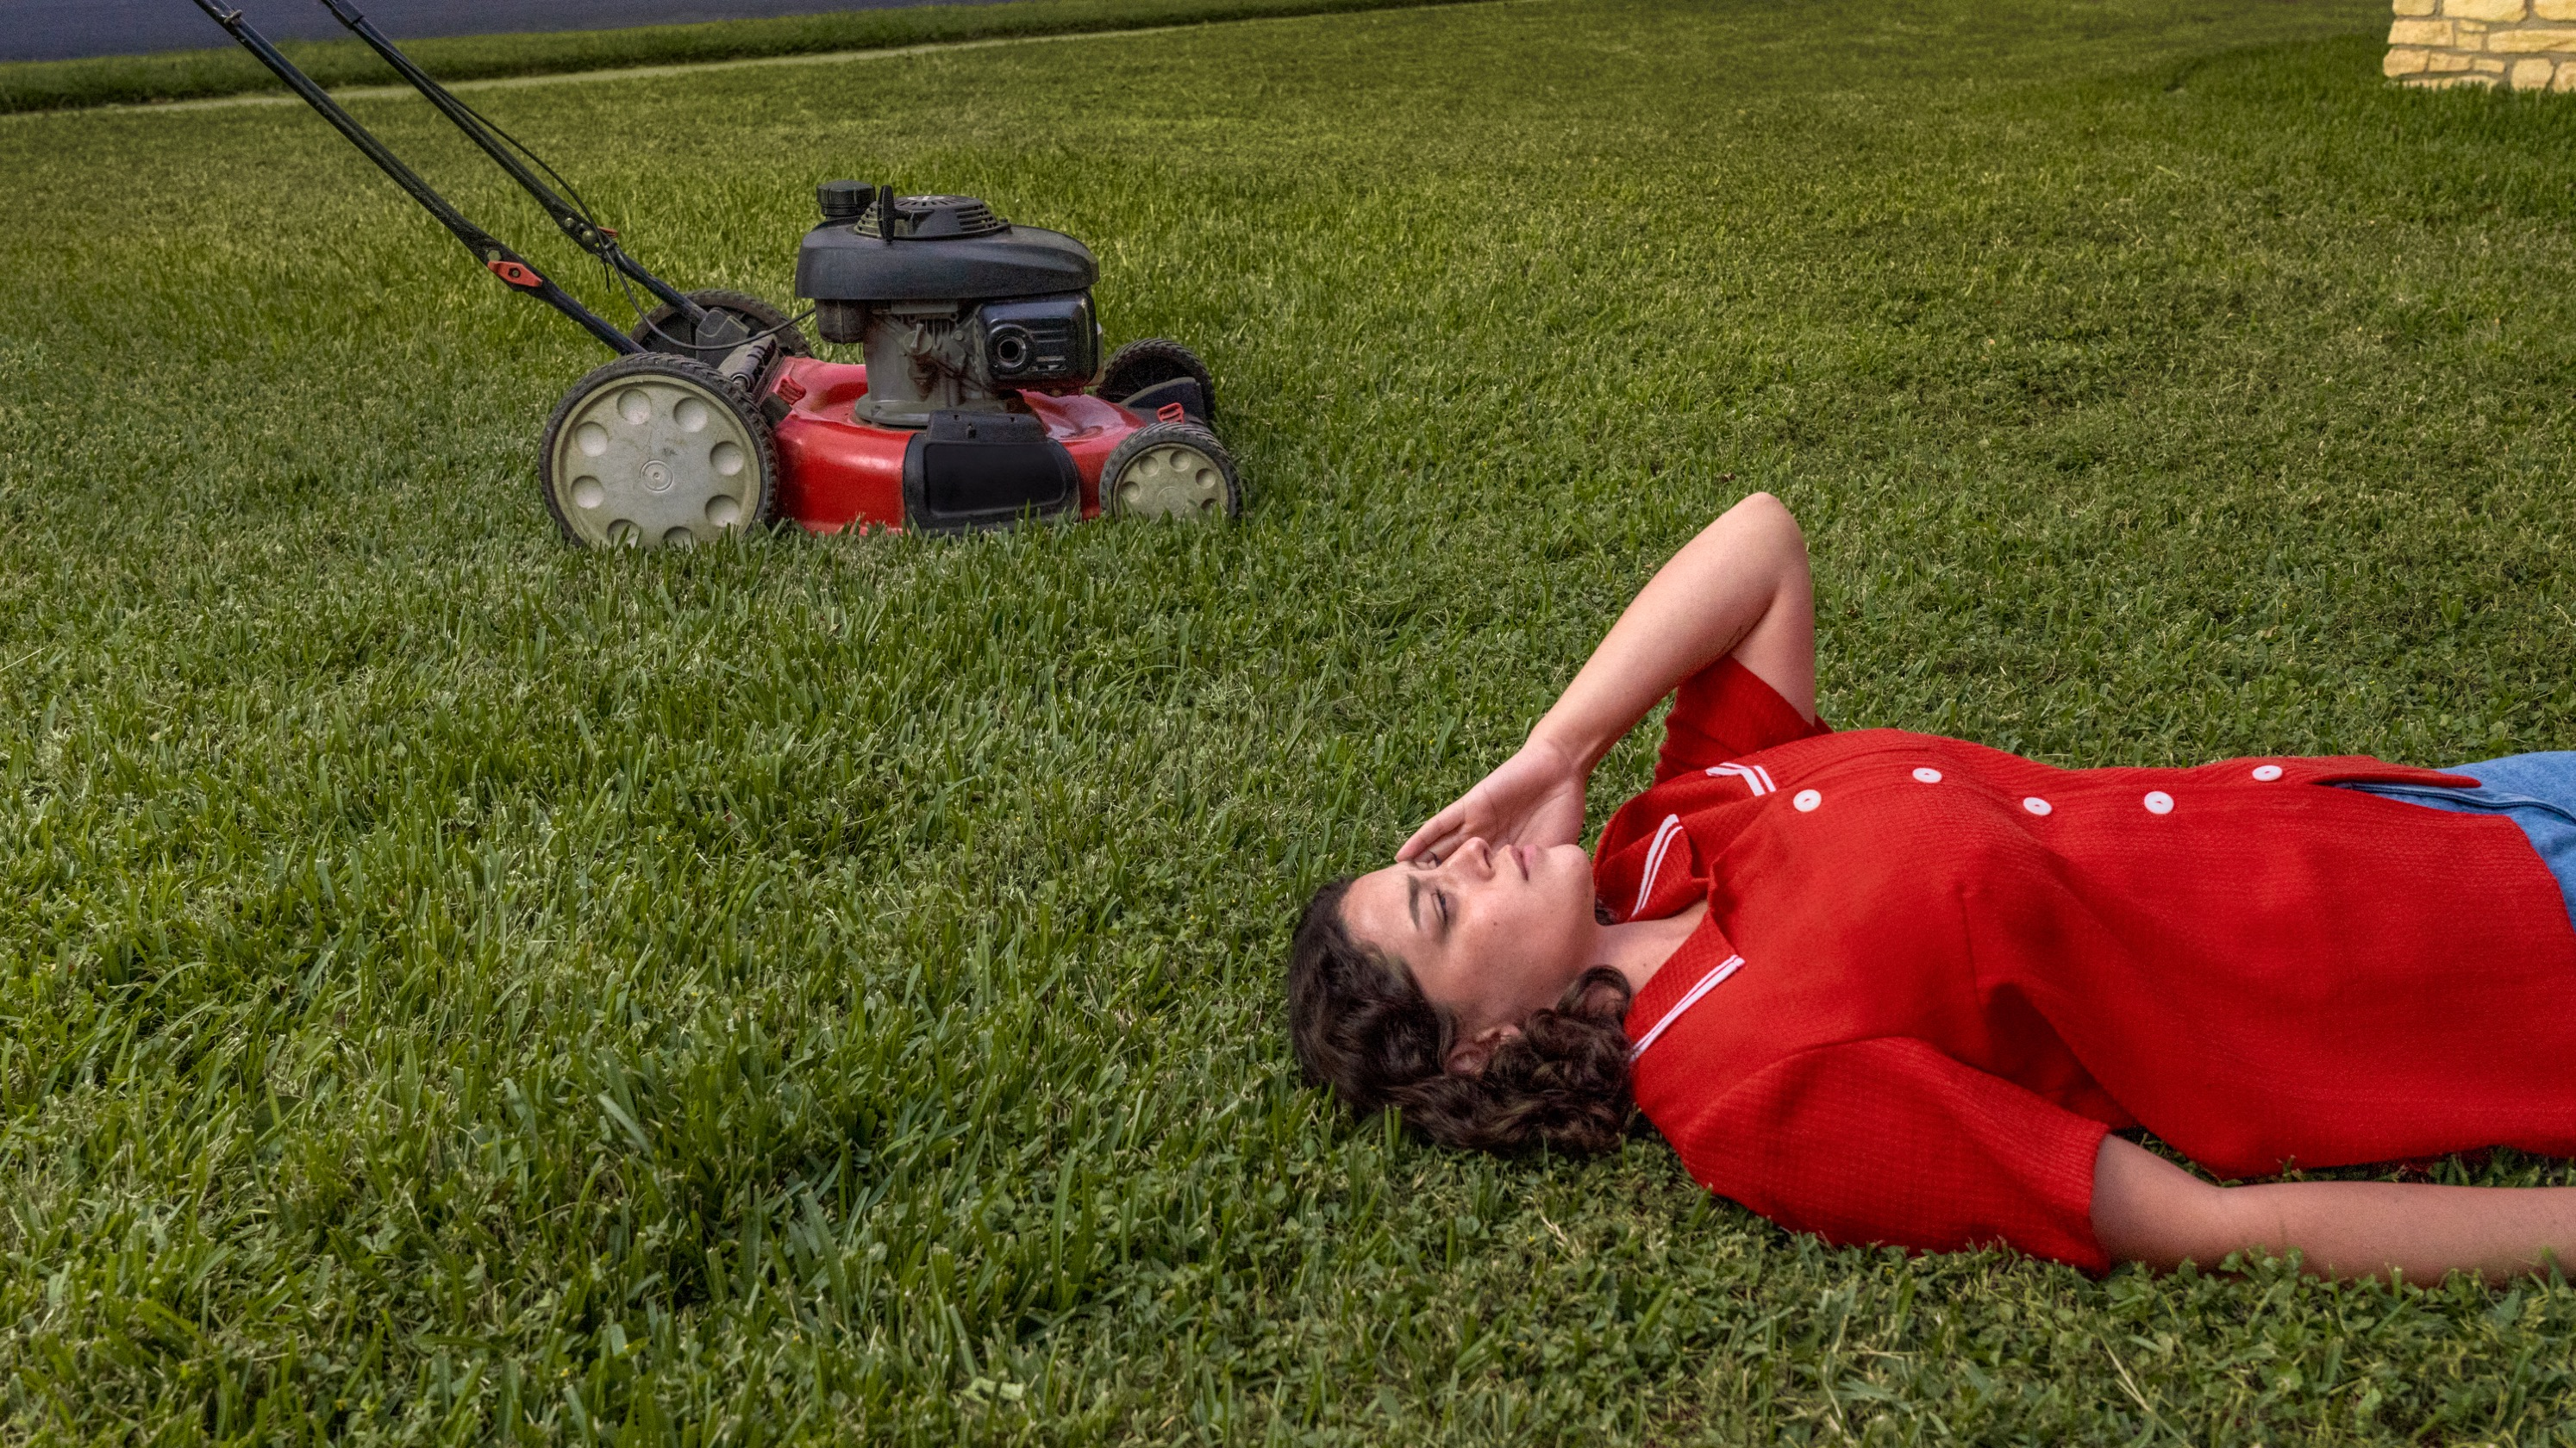 A person lying in the grass holding their head while a lawnmower goes by in the background.